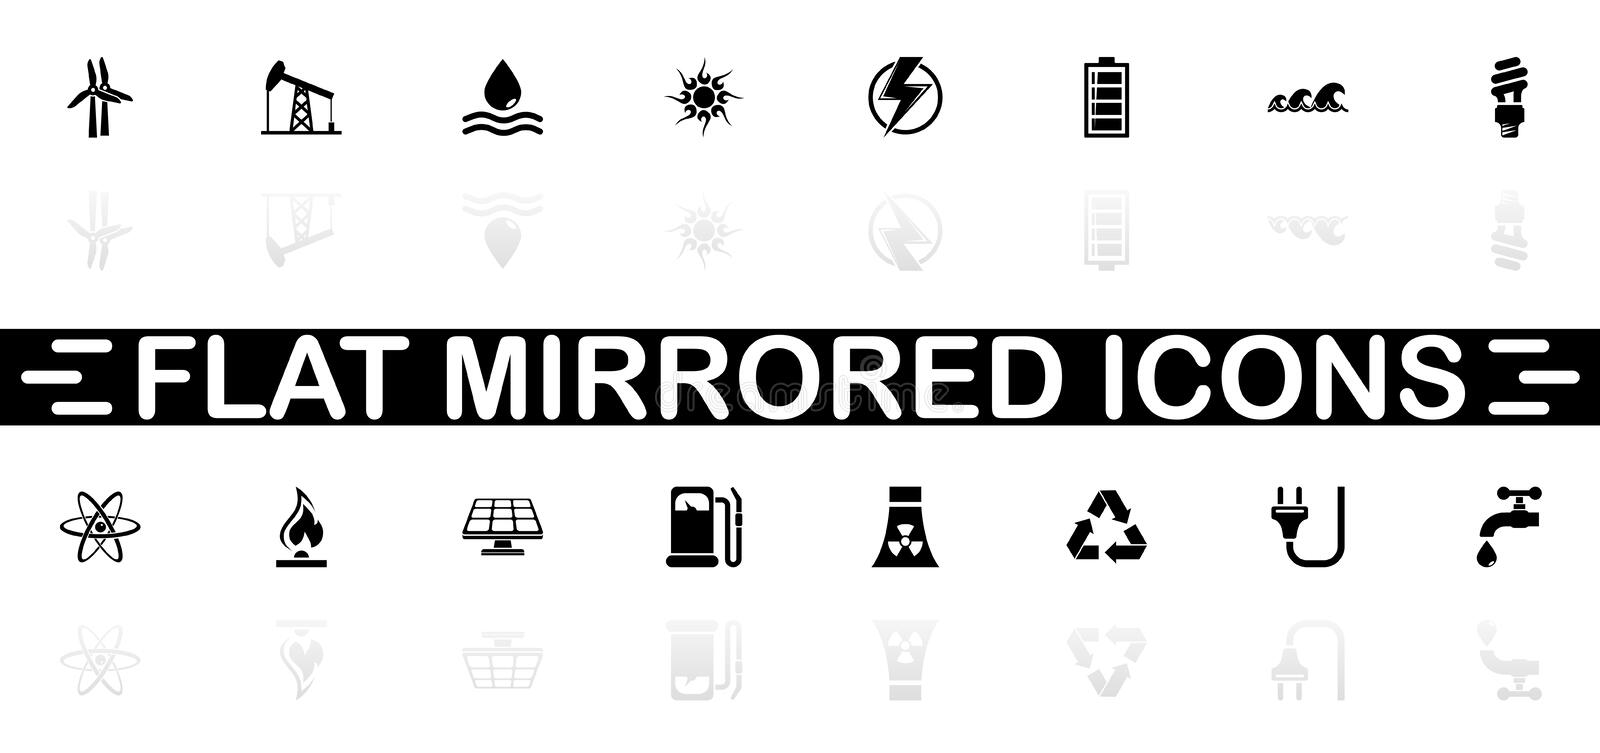 Energy - Flat Vector Icons. Energy icons - Black symbol on white background. Simple illustration. Flat Vector Icon. Mirror Reflection Shadow. Can be used in logo vector illustration